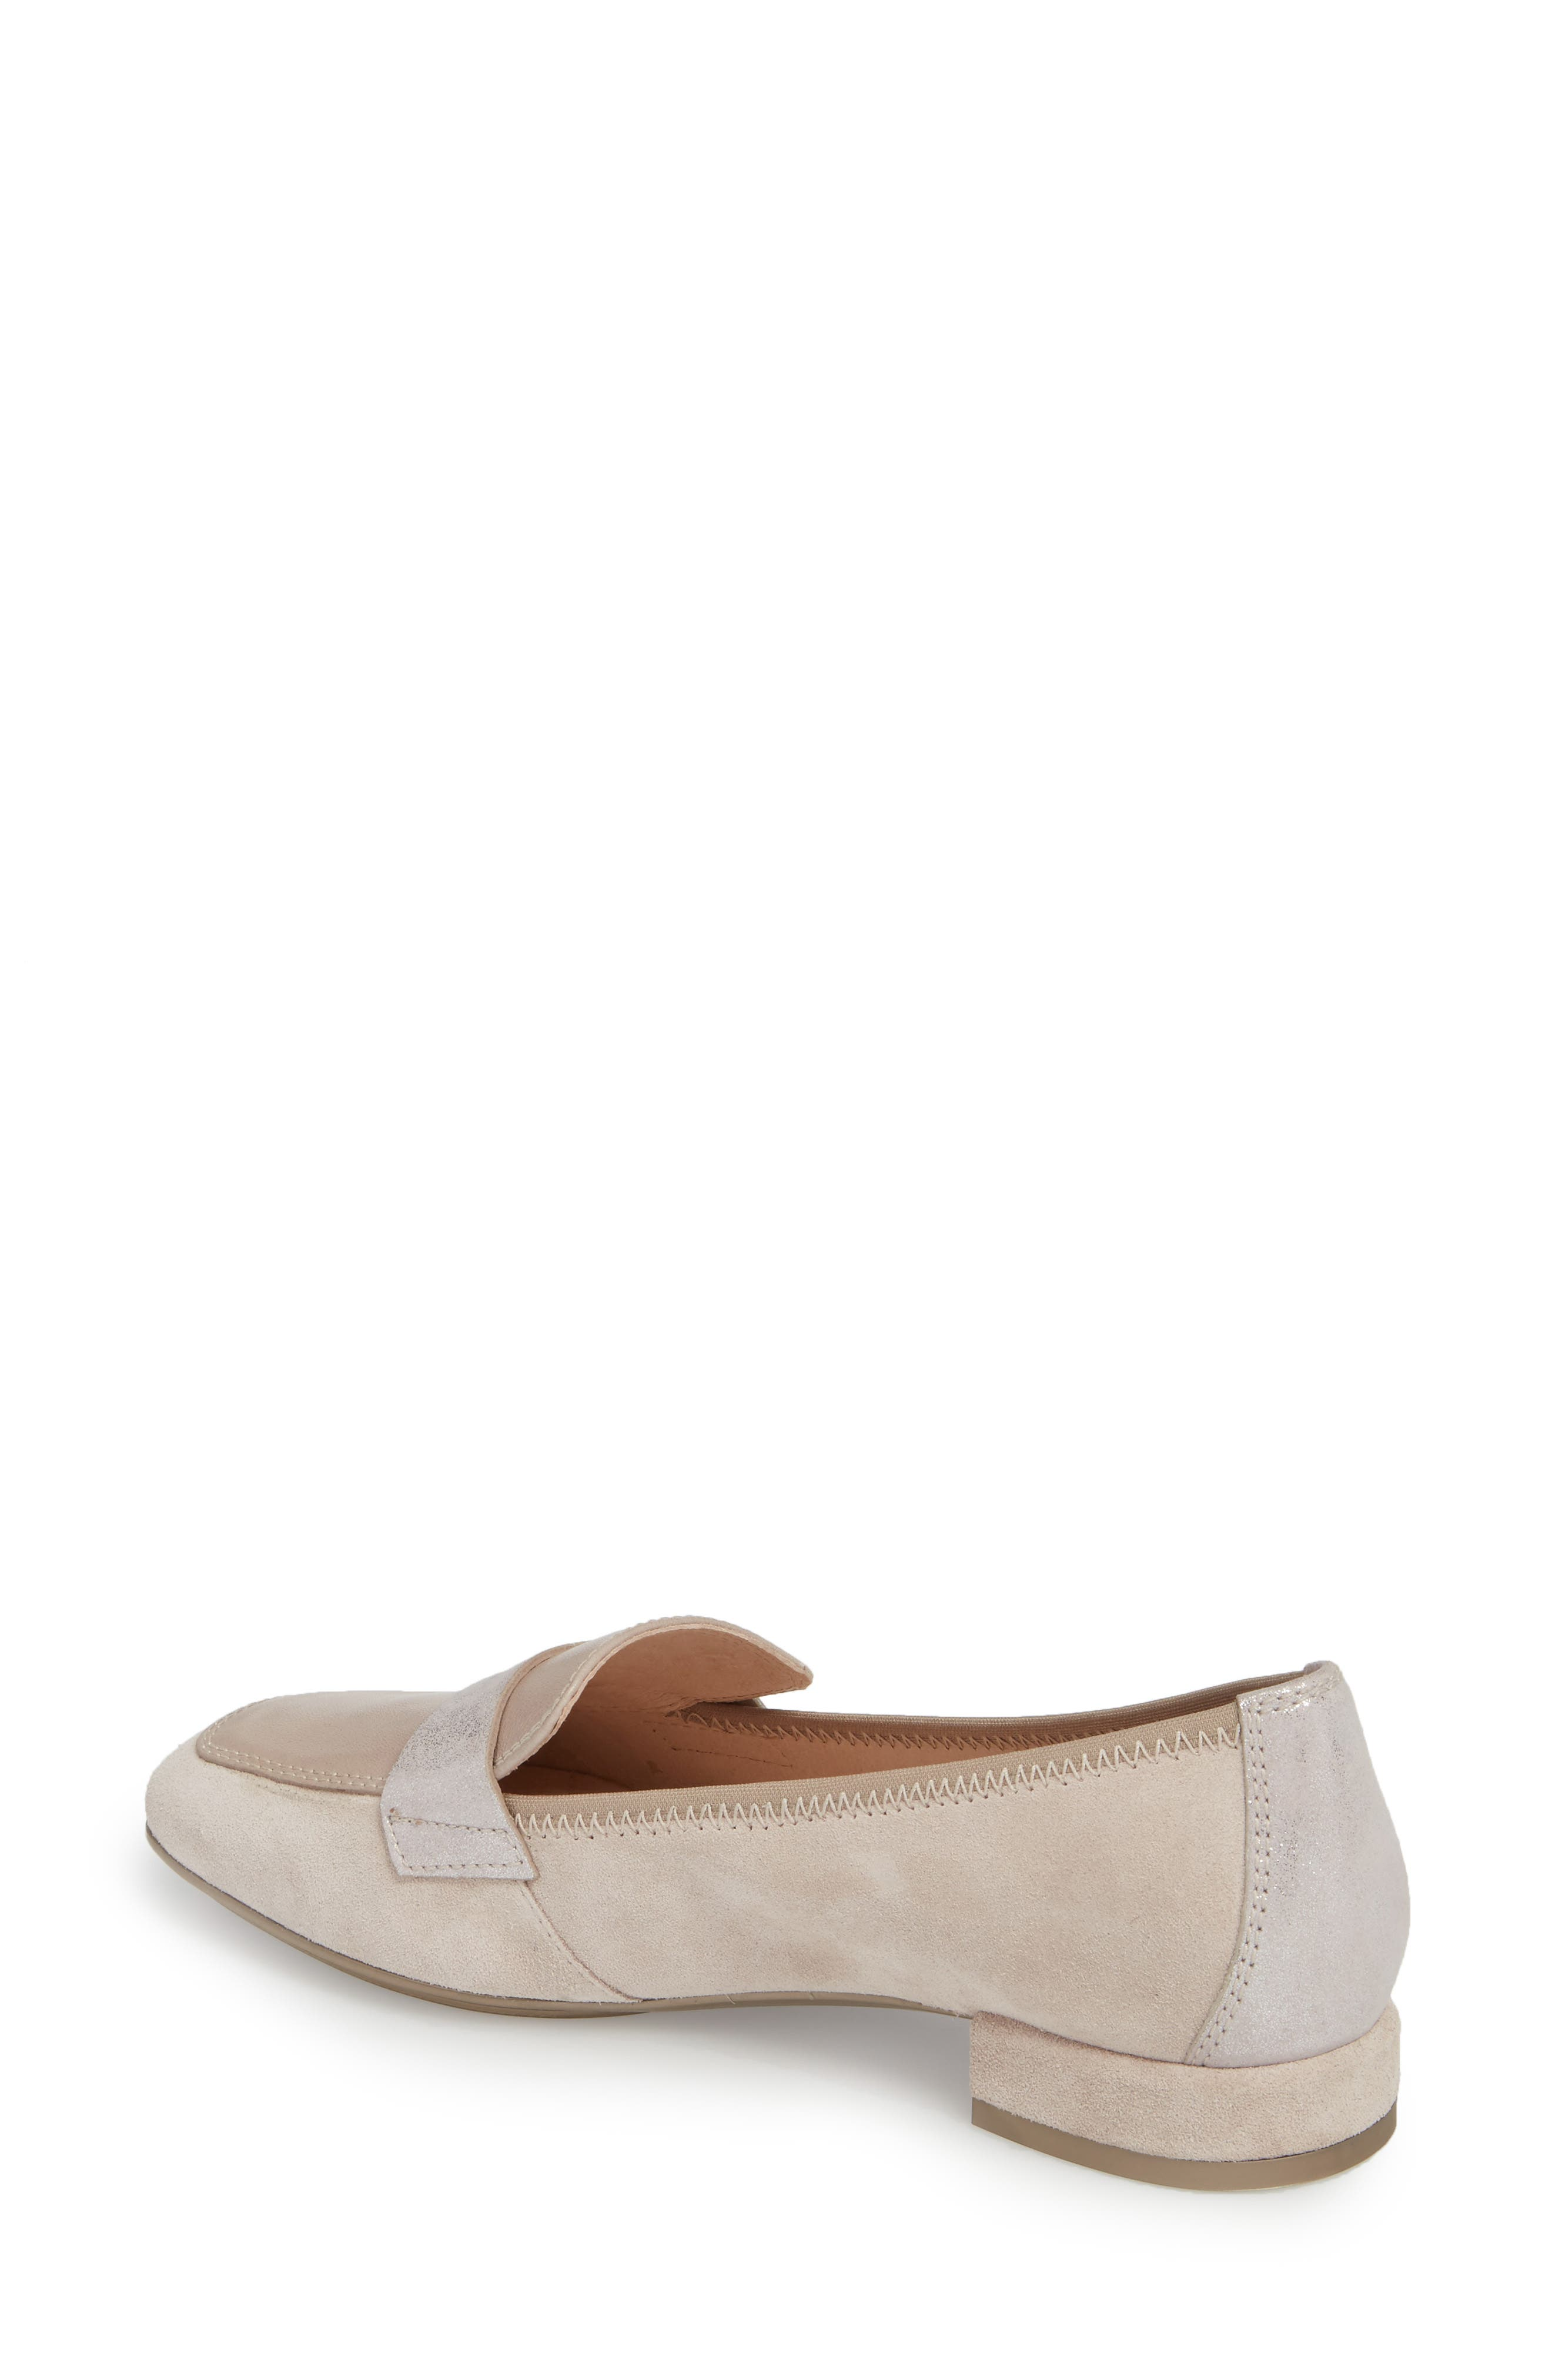 Indie Loafer,                             Alternate thumbnail 2, color,                             250